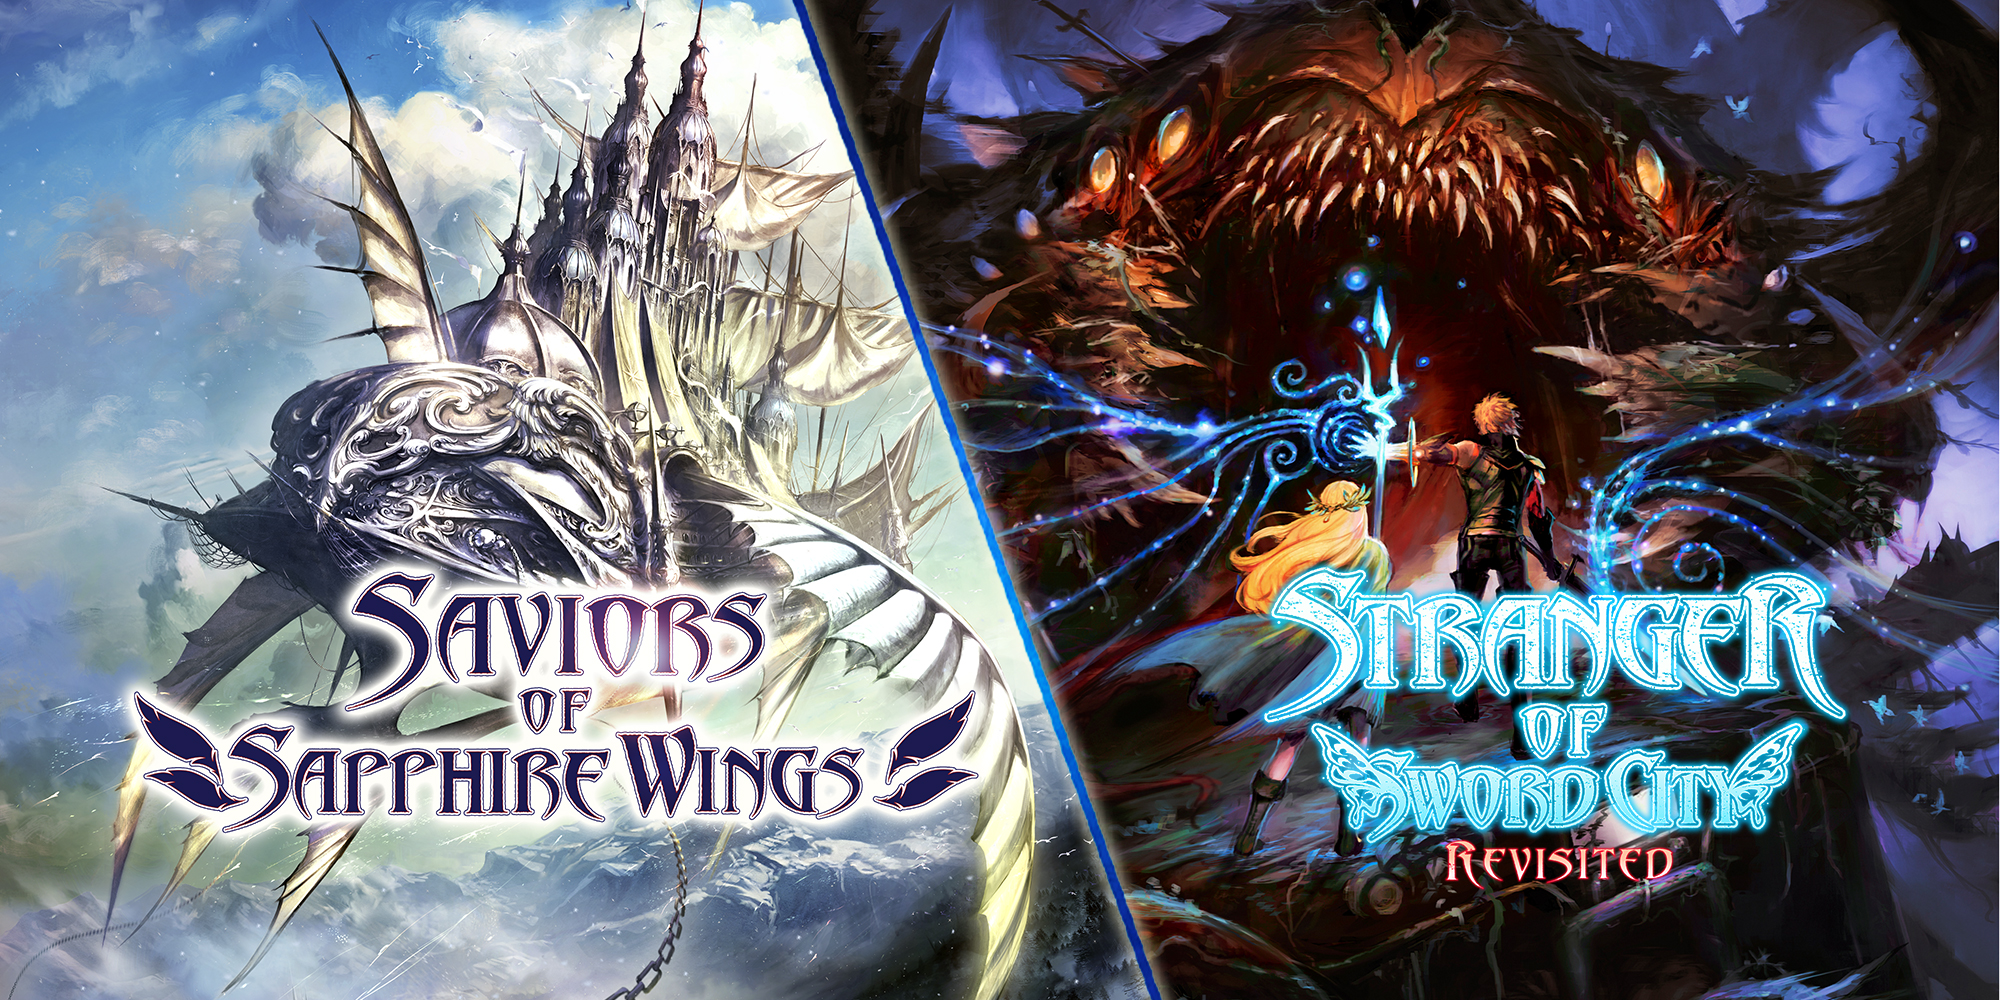 Read more about the article Saviors Of Sapphire Wings/Stranger Of Sword City Revisited